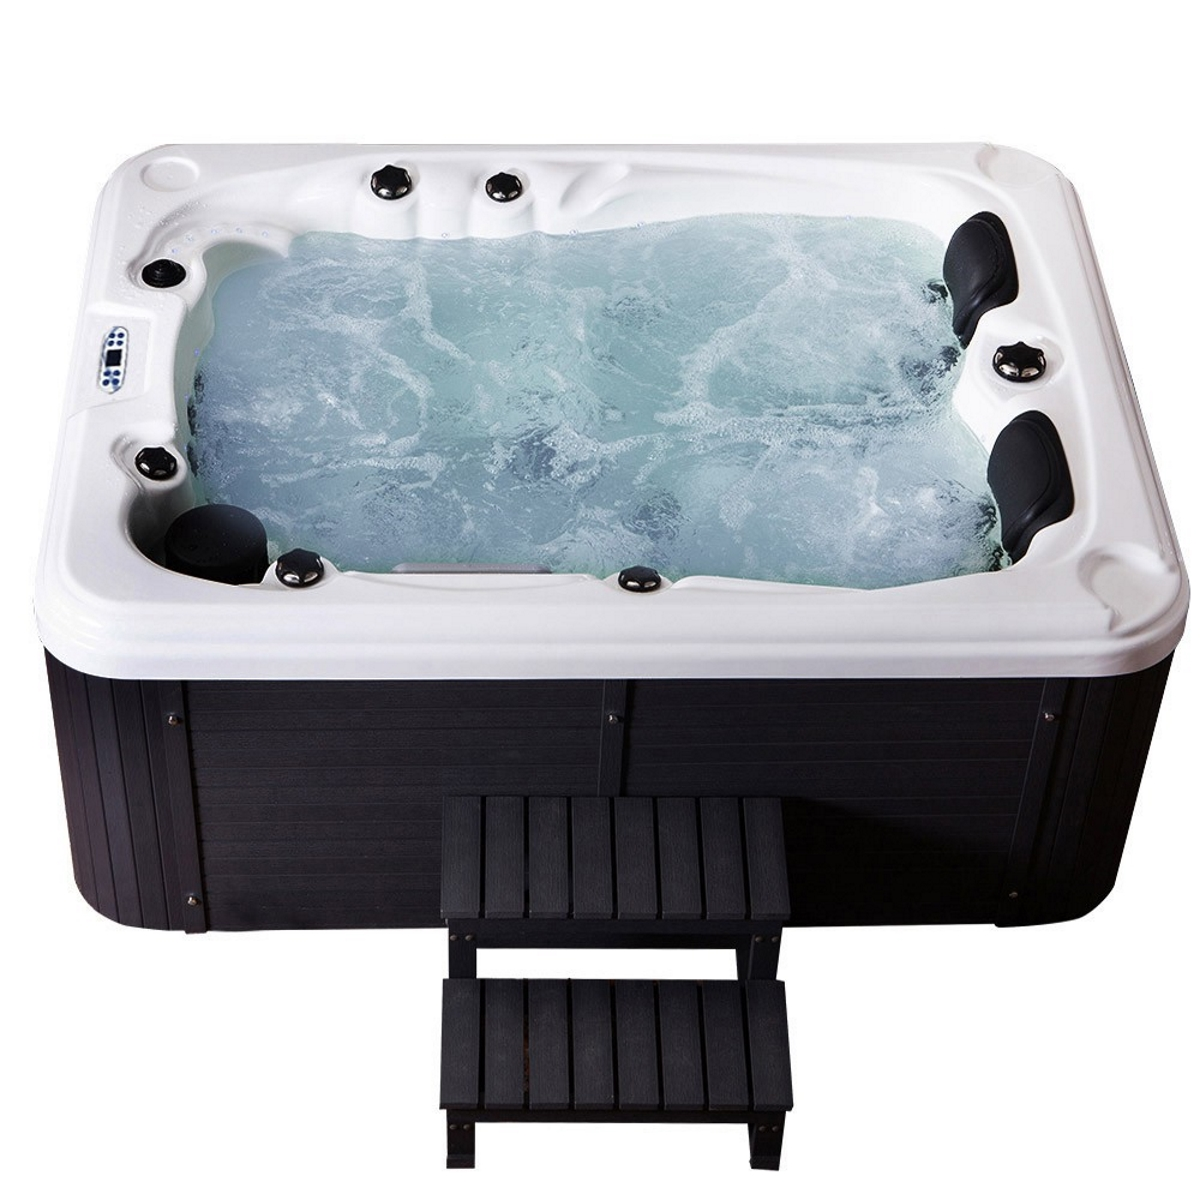 hot tub whirlpool outdoor 51 d sen heizung ozon g nstig f r 2 3 personen supply24. Black Bedroom Furniture Sets. Home Design Ideas